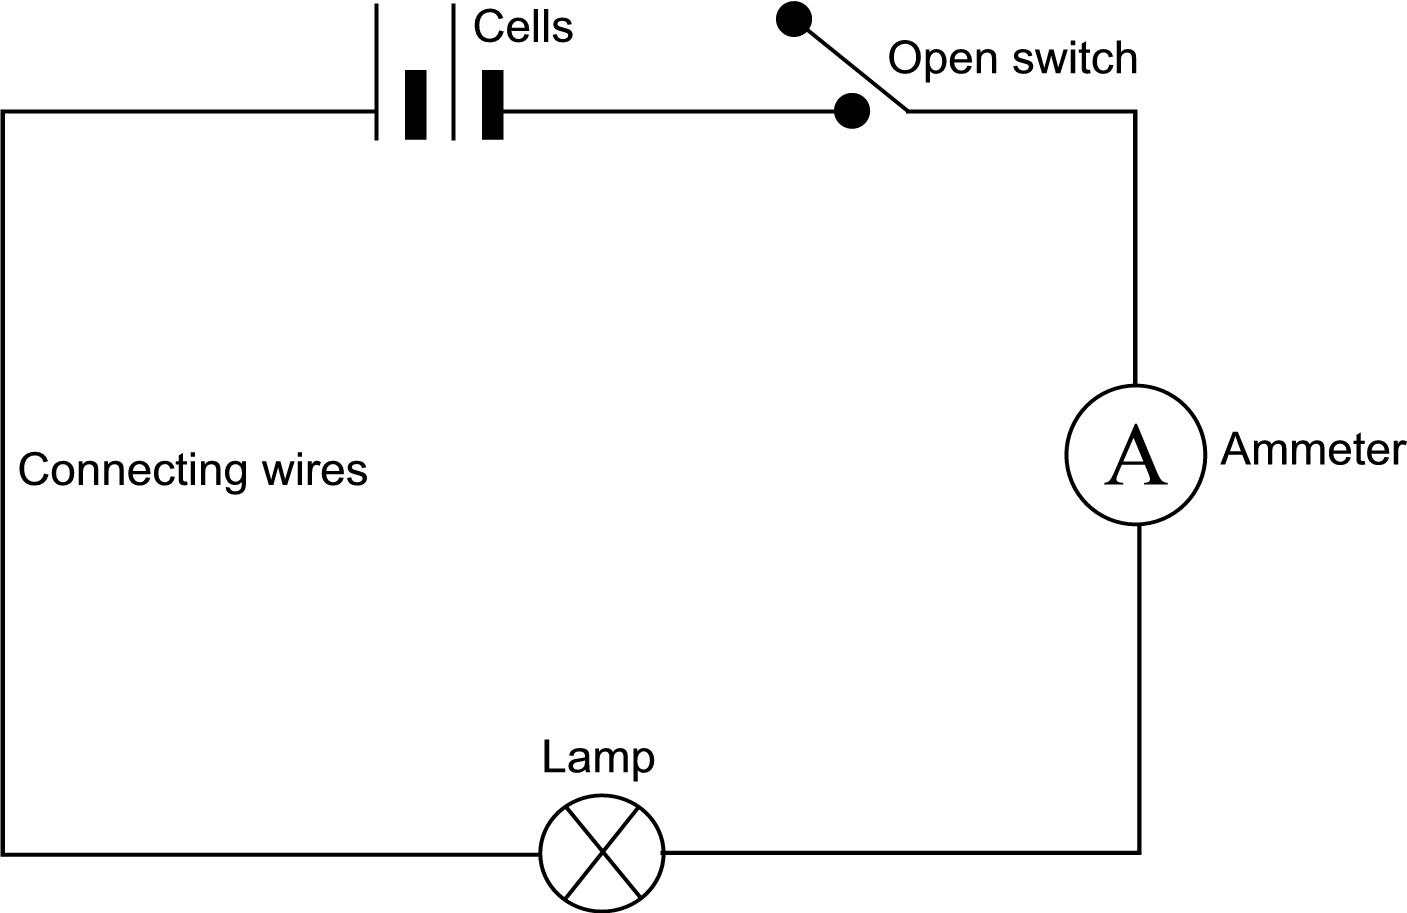 A Light Bulb Circuit Diagram With Labeled Parts Of A Closed With ...